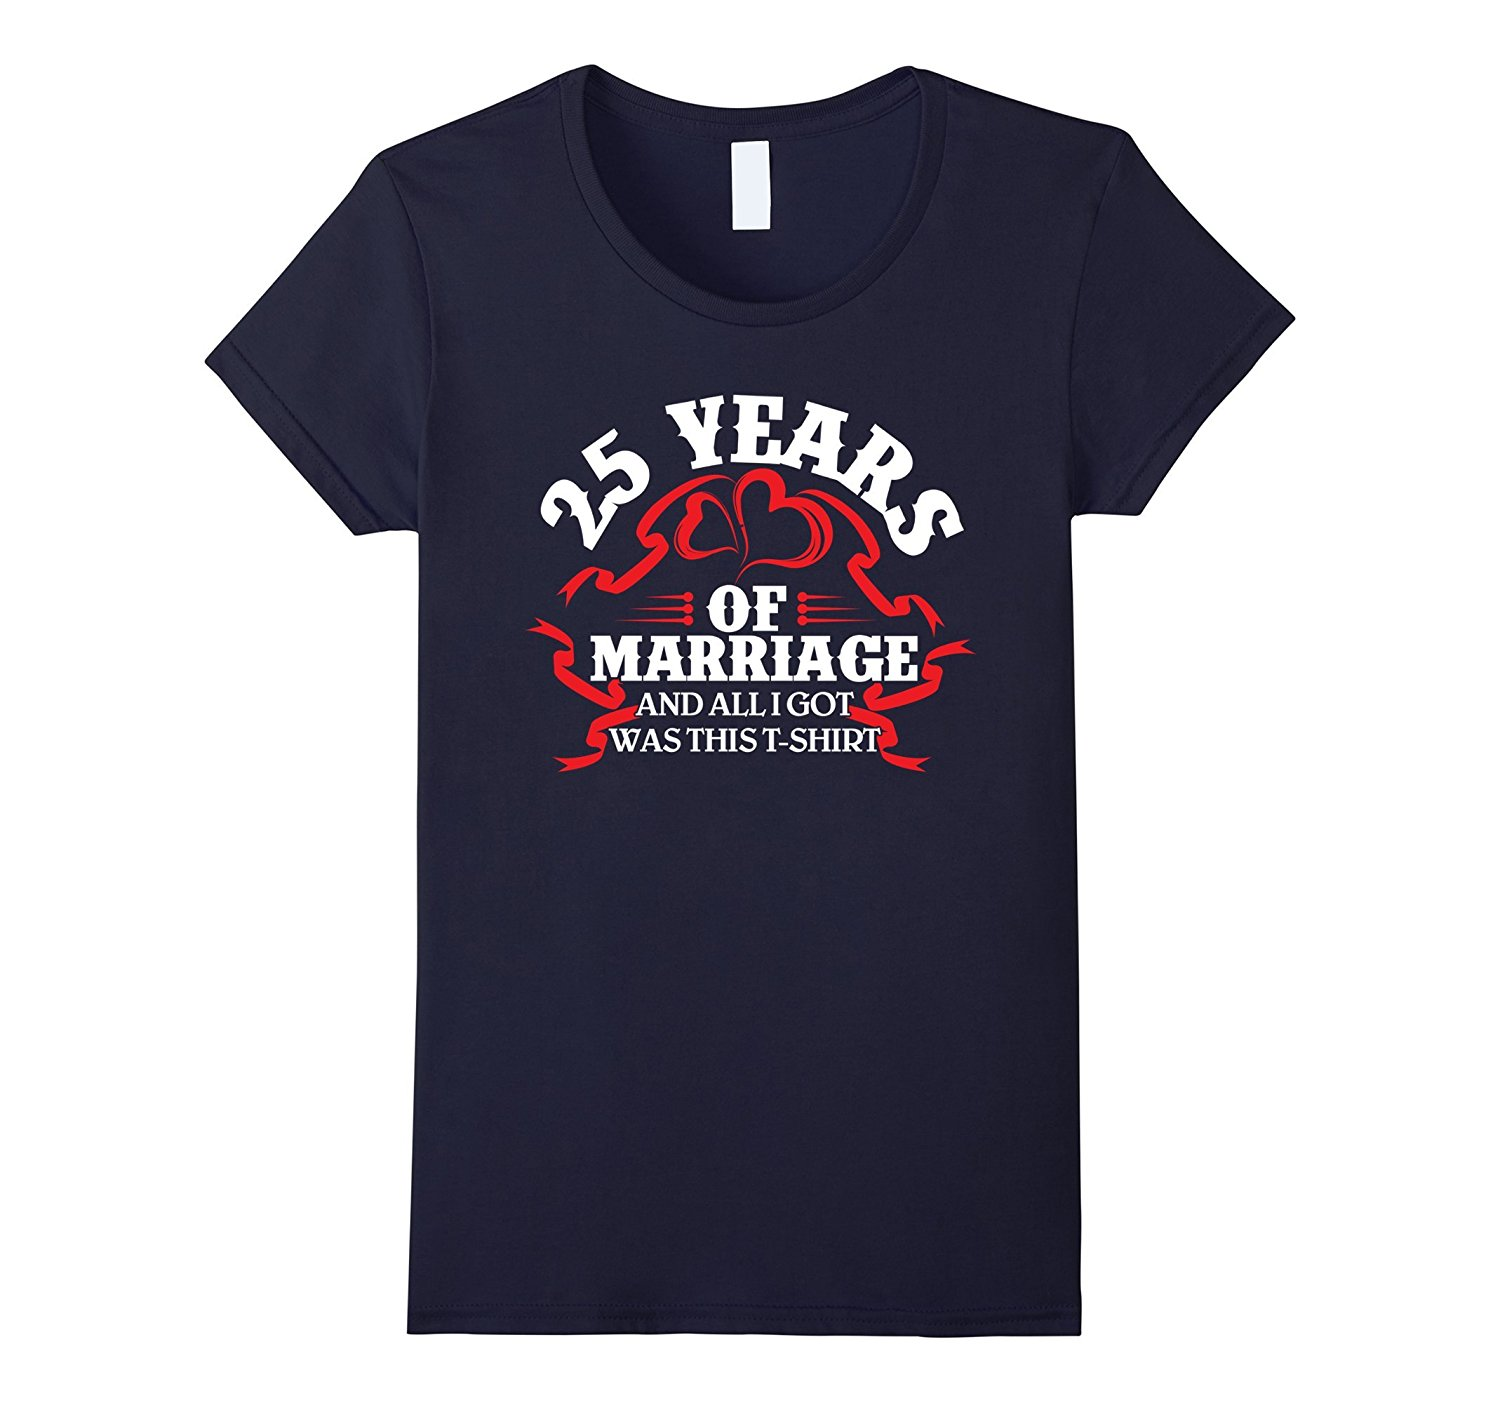 perfect gift for 25th wedding anniversary image collections